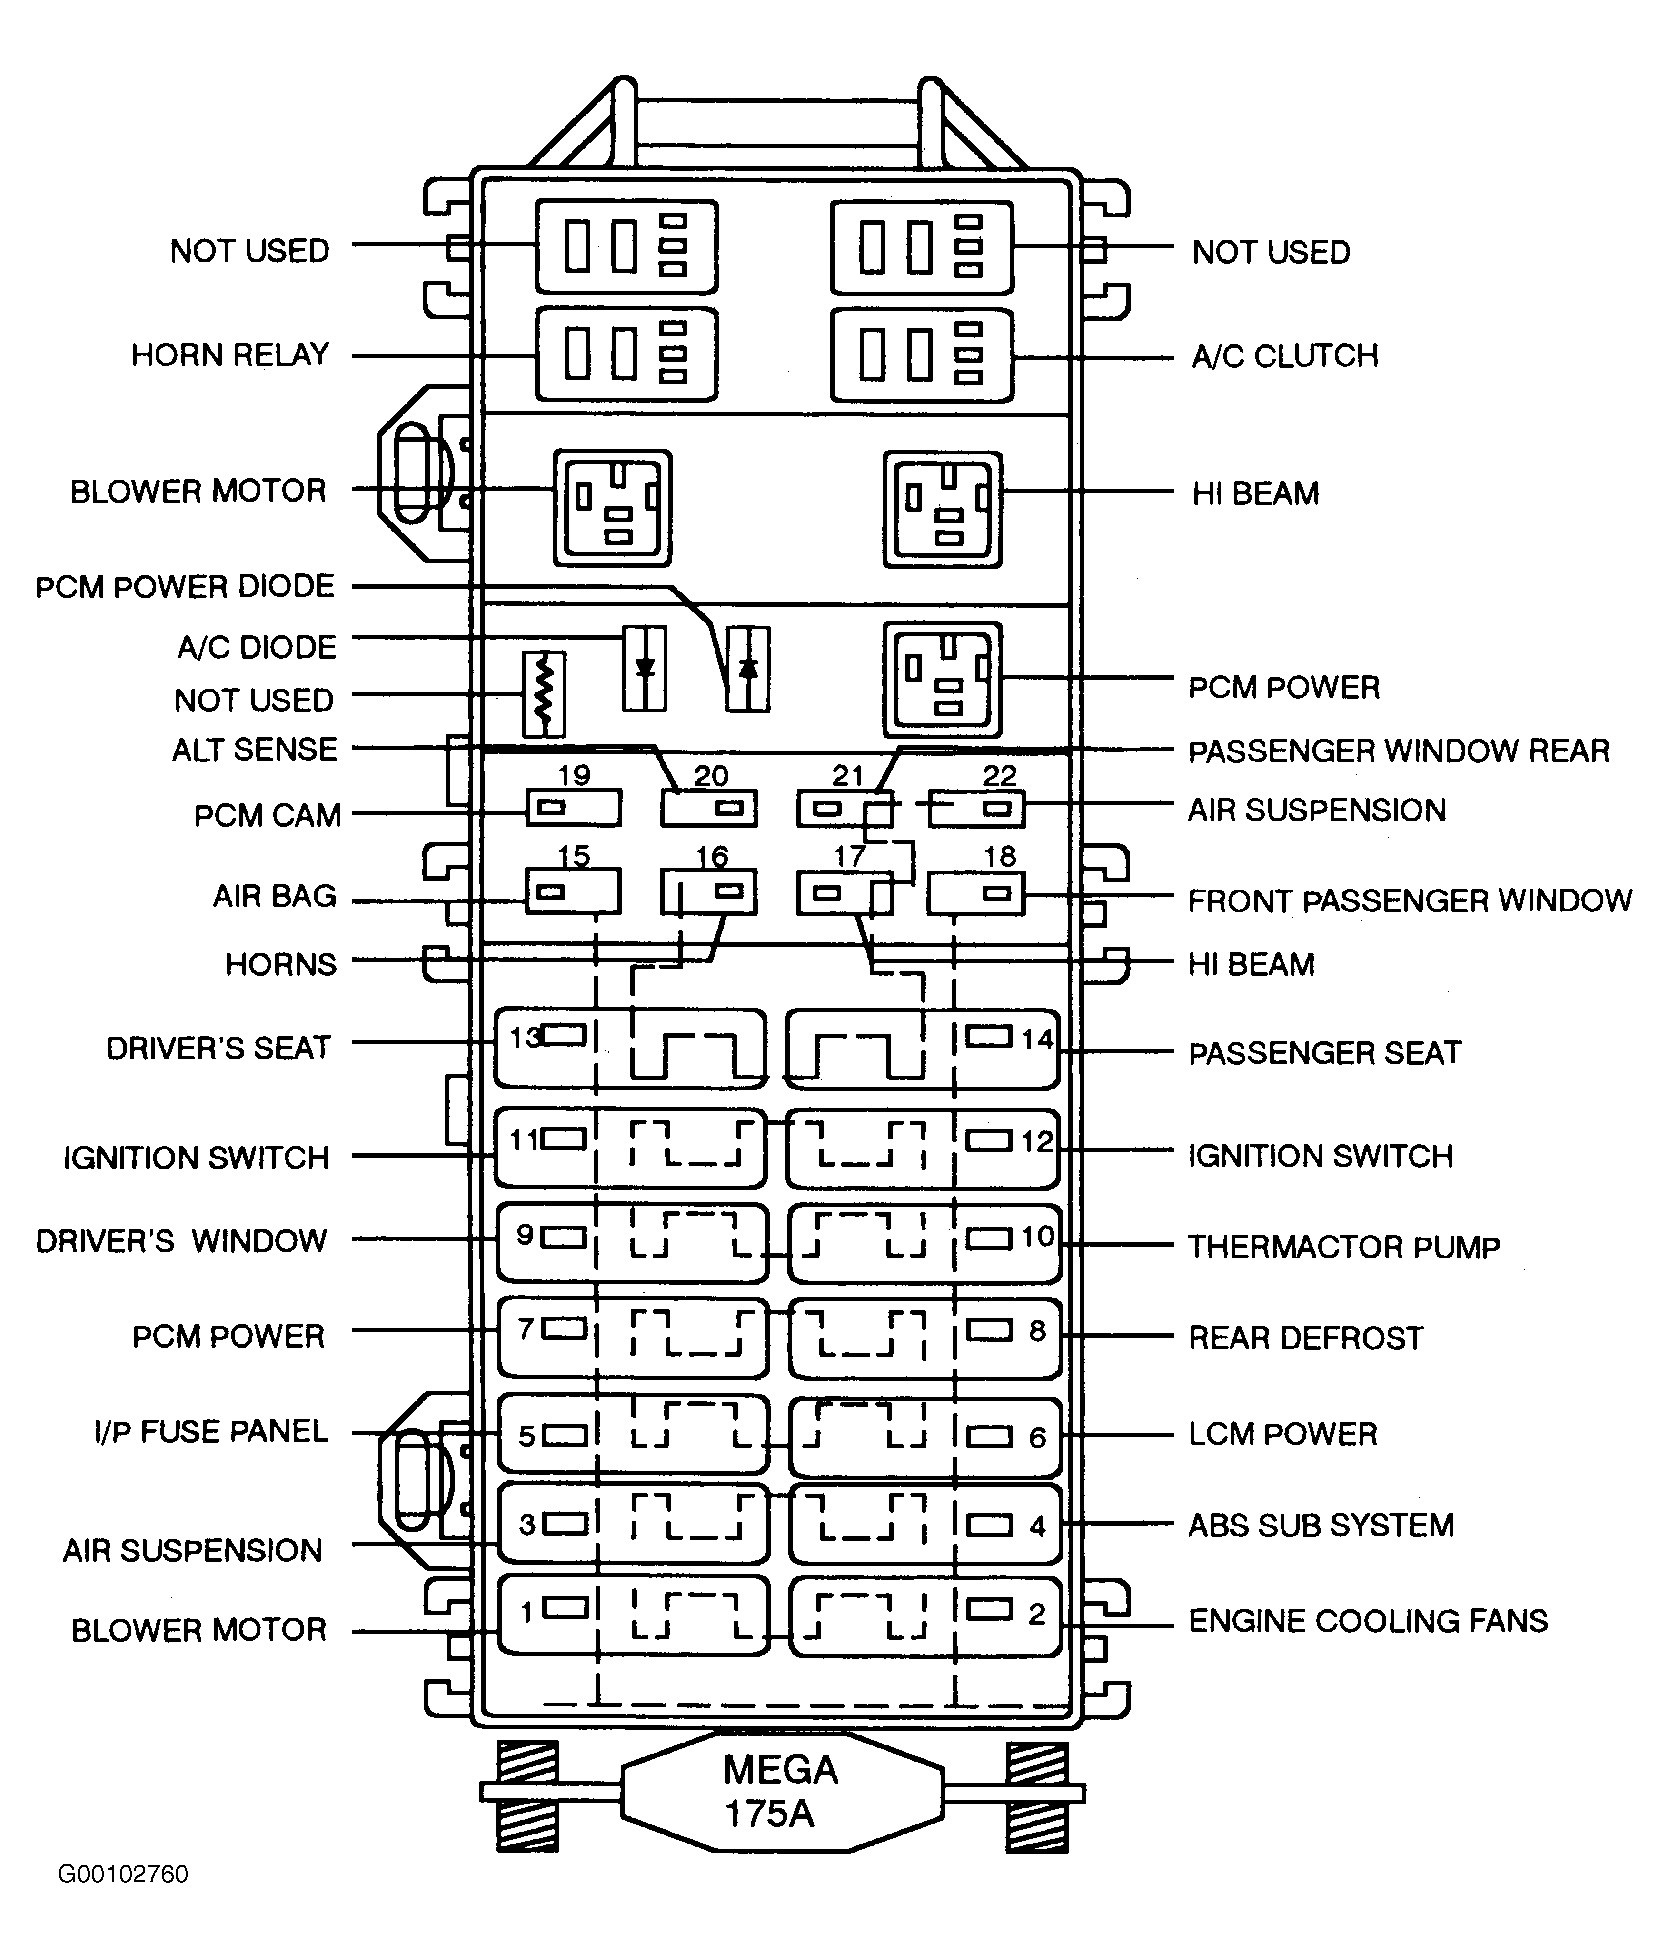 Trailblazer Fuse Box Diagram